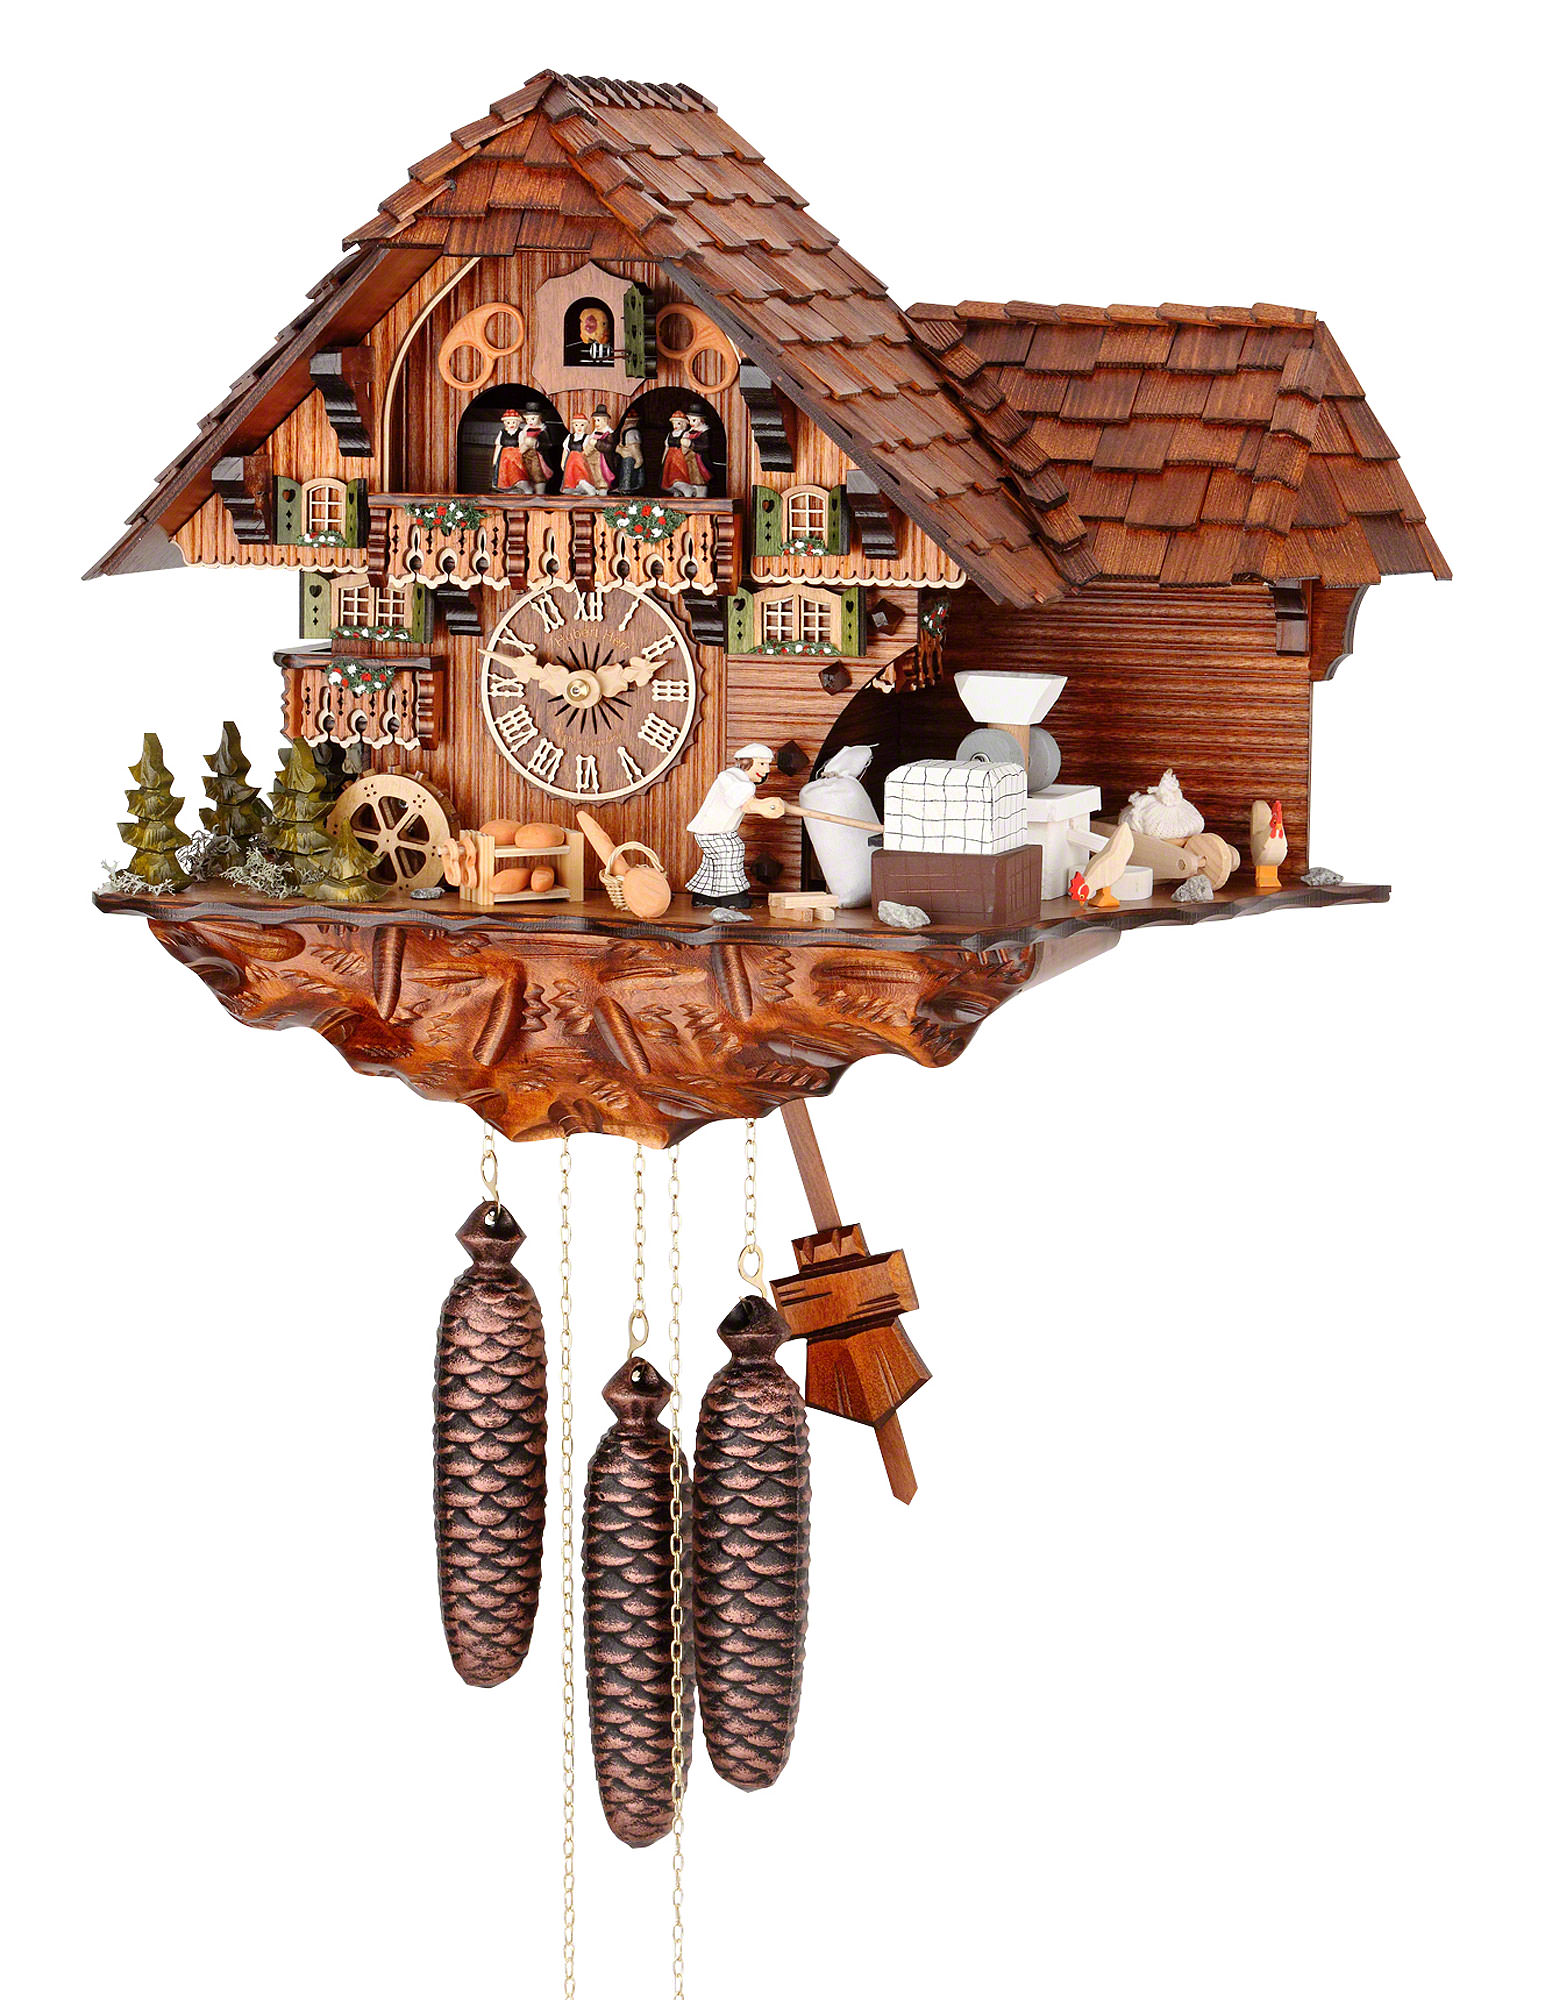 Cuckoo Clock 8 Day Movement Chalet Style 40cm By Hubert